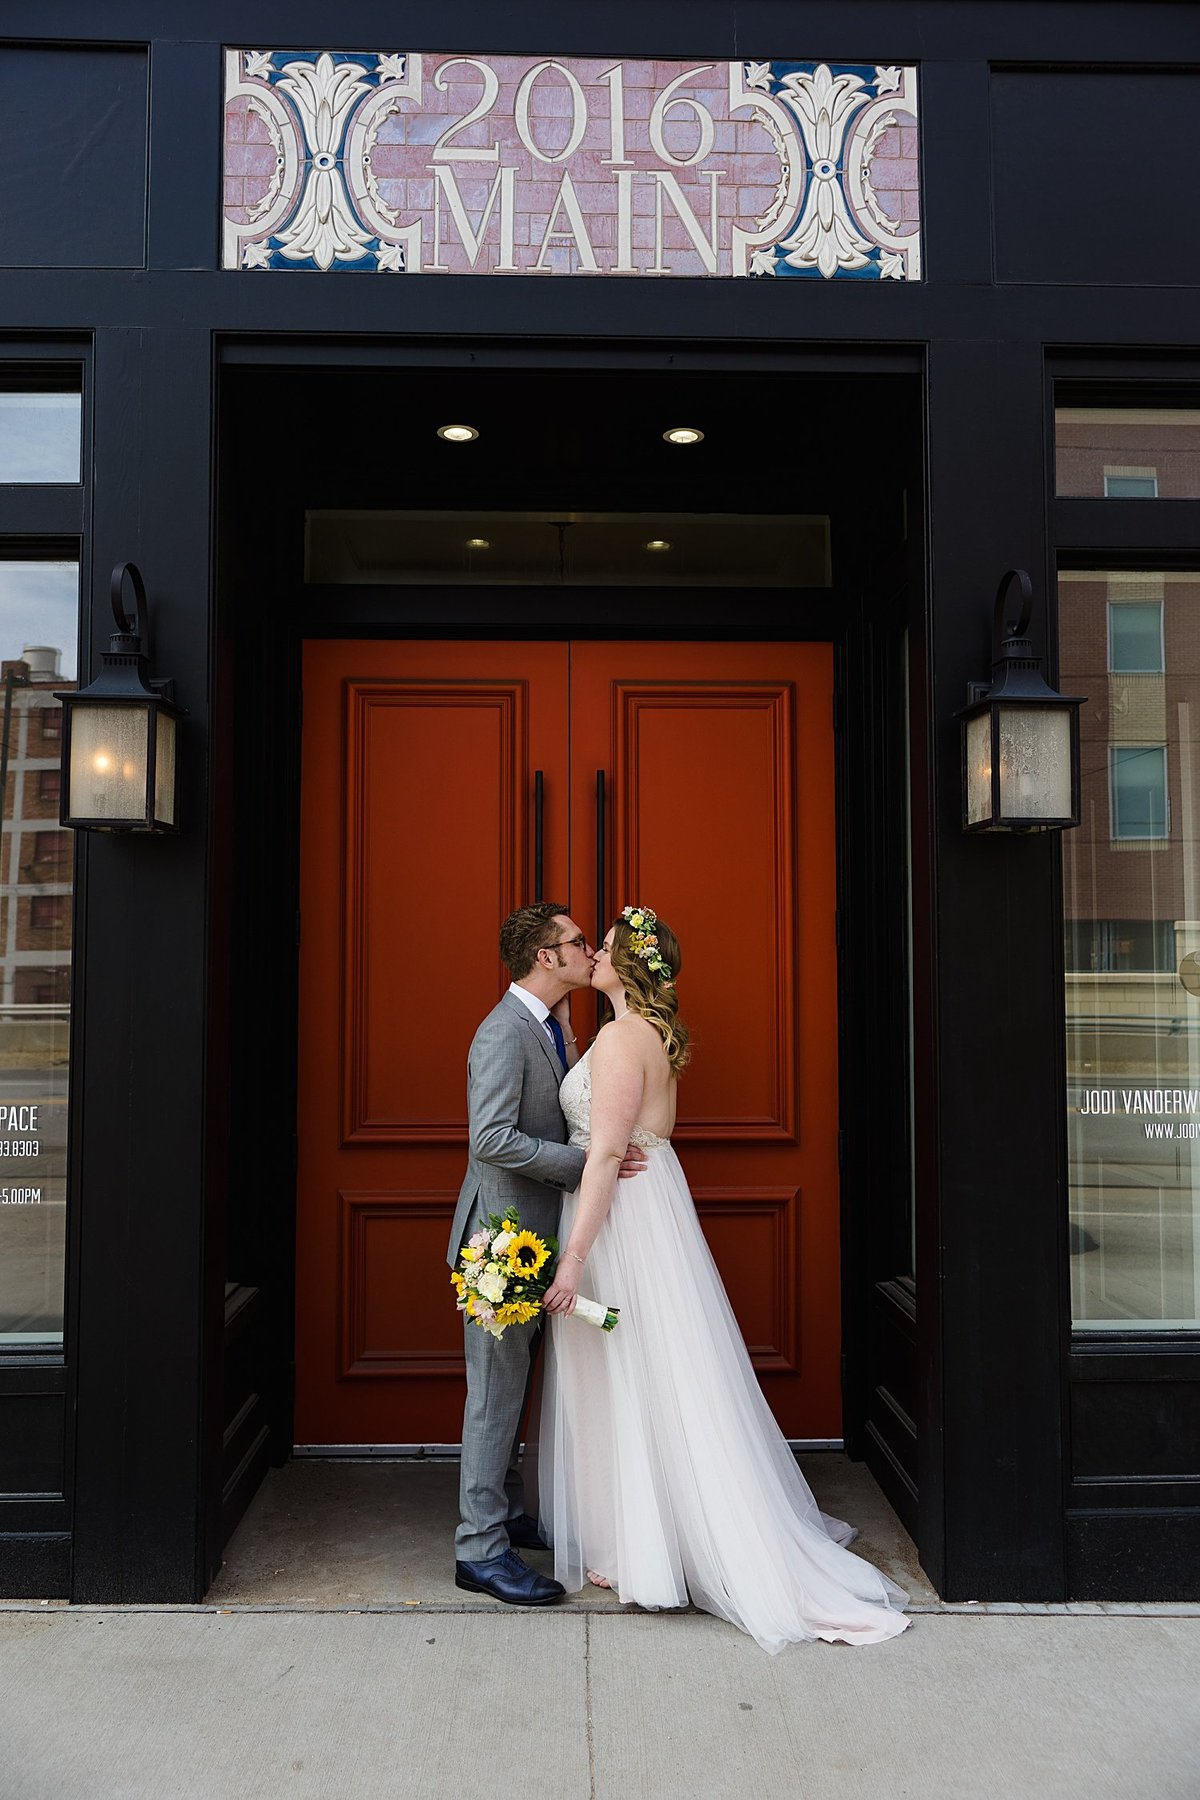 2016 Main Wedding Photos-Downtown KC Wedding-Photographer-Emily-Lynn-Photography_0006